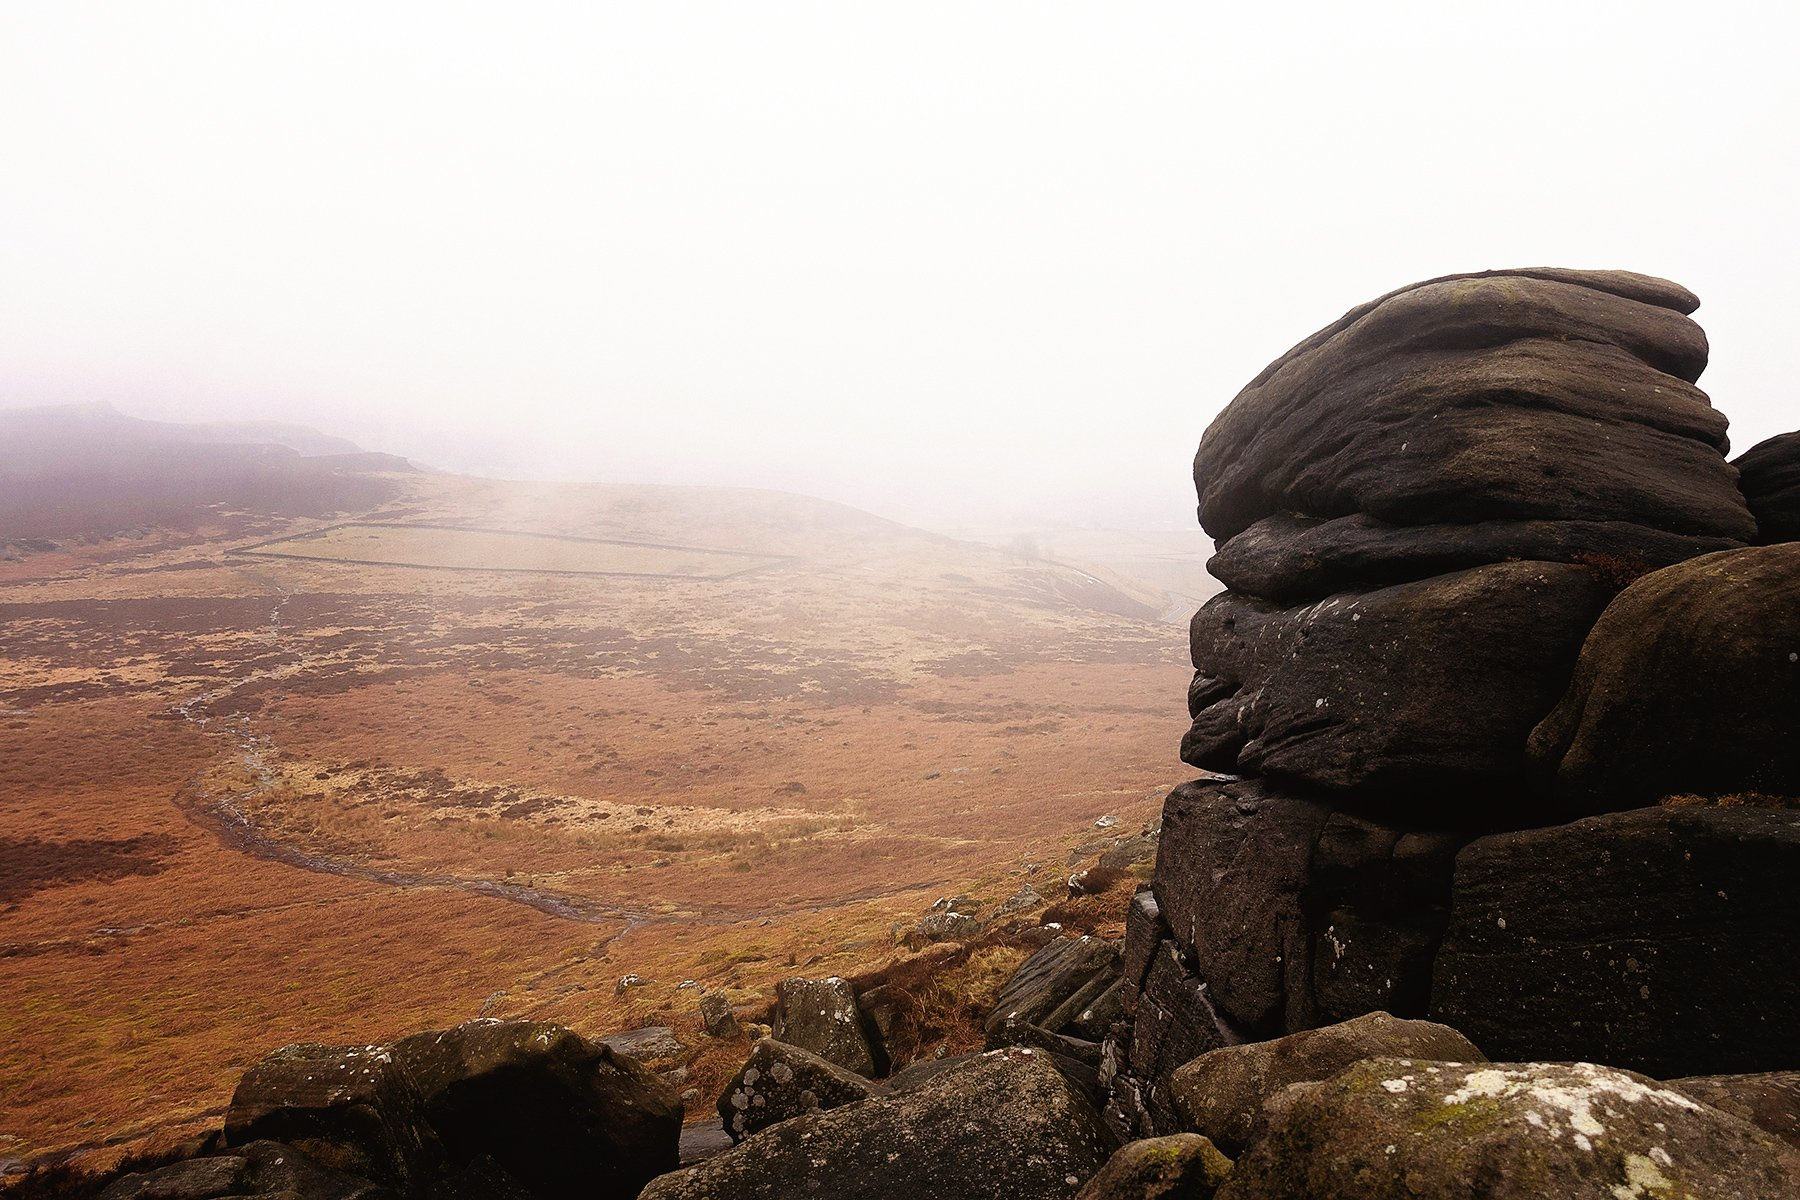 It was very foggy but I still enjoyed the mysterious views.